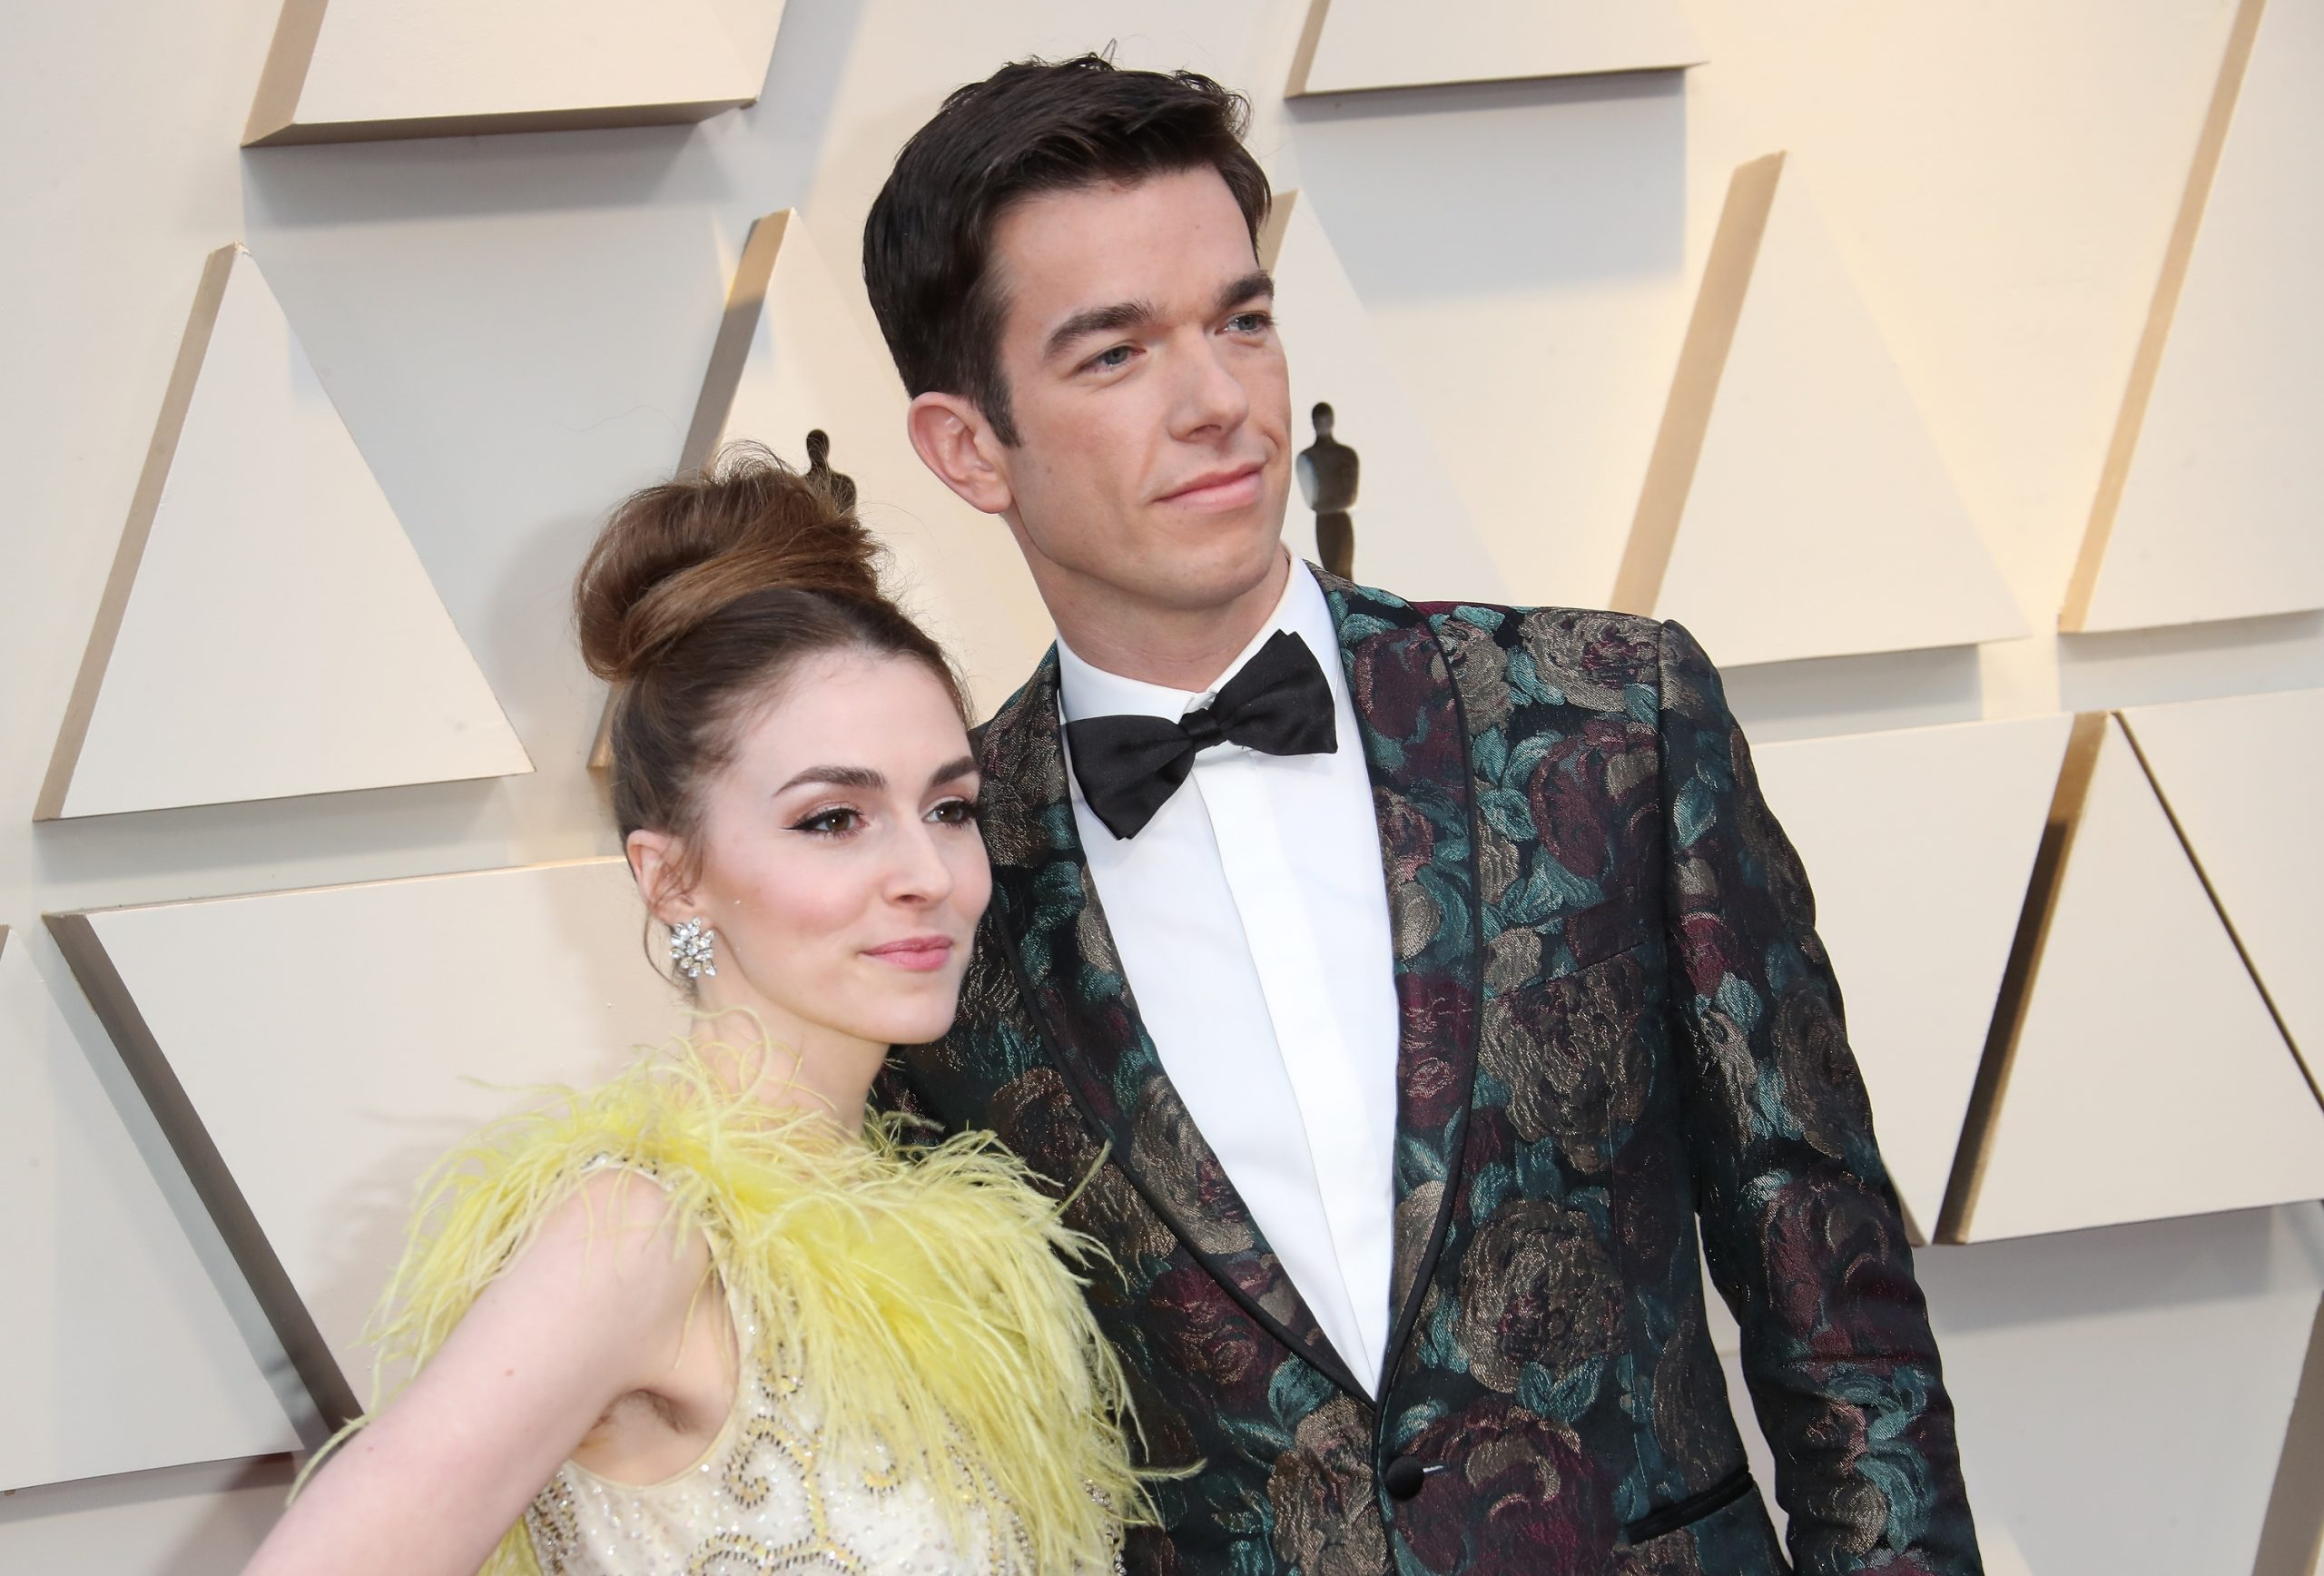 Anna Marie Tendler and John Mulaney at the 91st Annual Academy Awards at Hollywood and Highland on Feb. 24, 2019